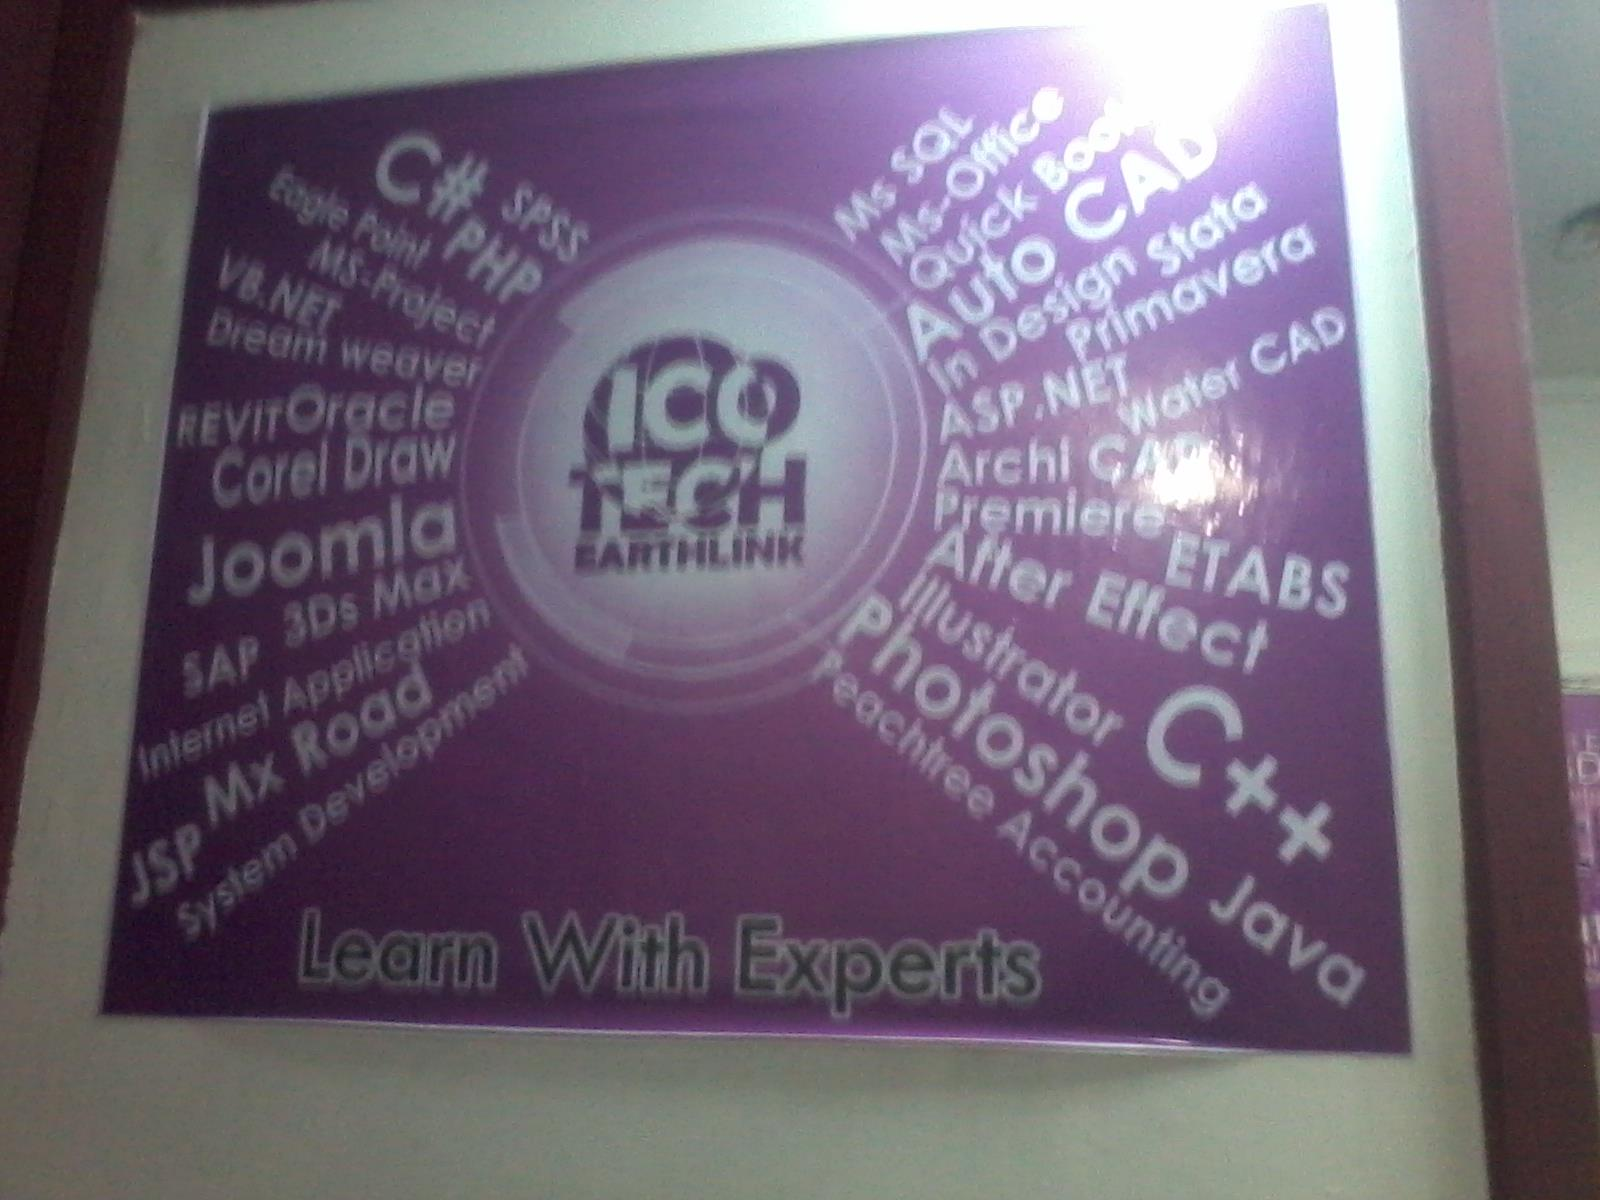 ICoTech Earthlink Technologies Training Center